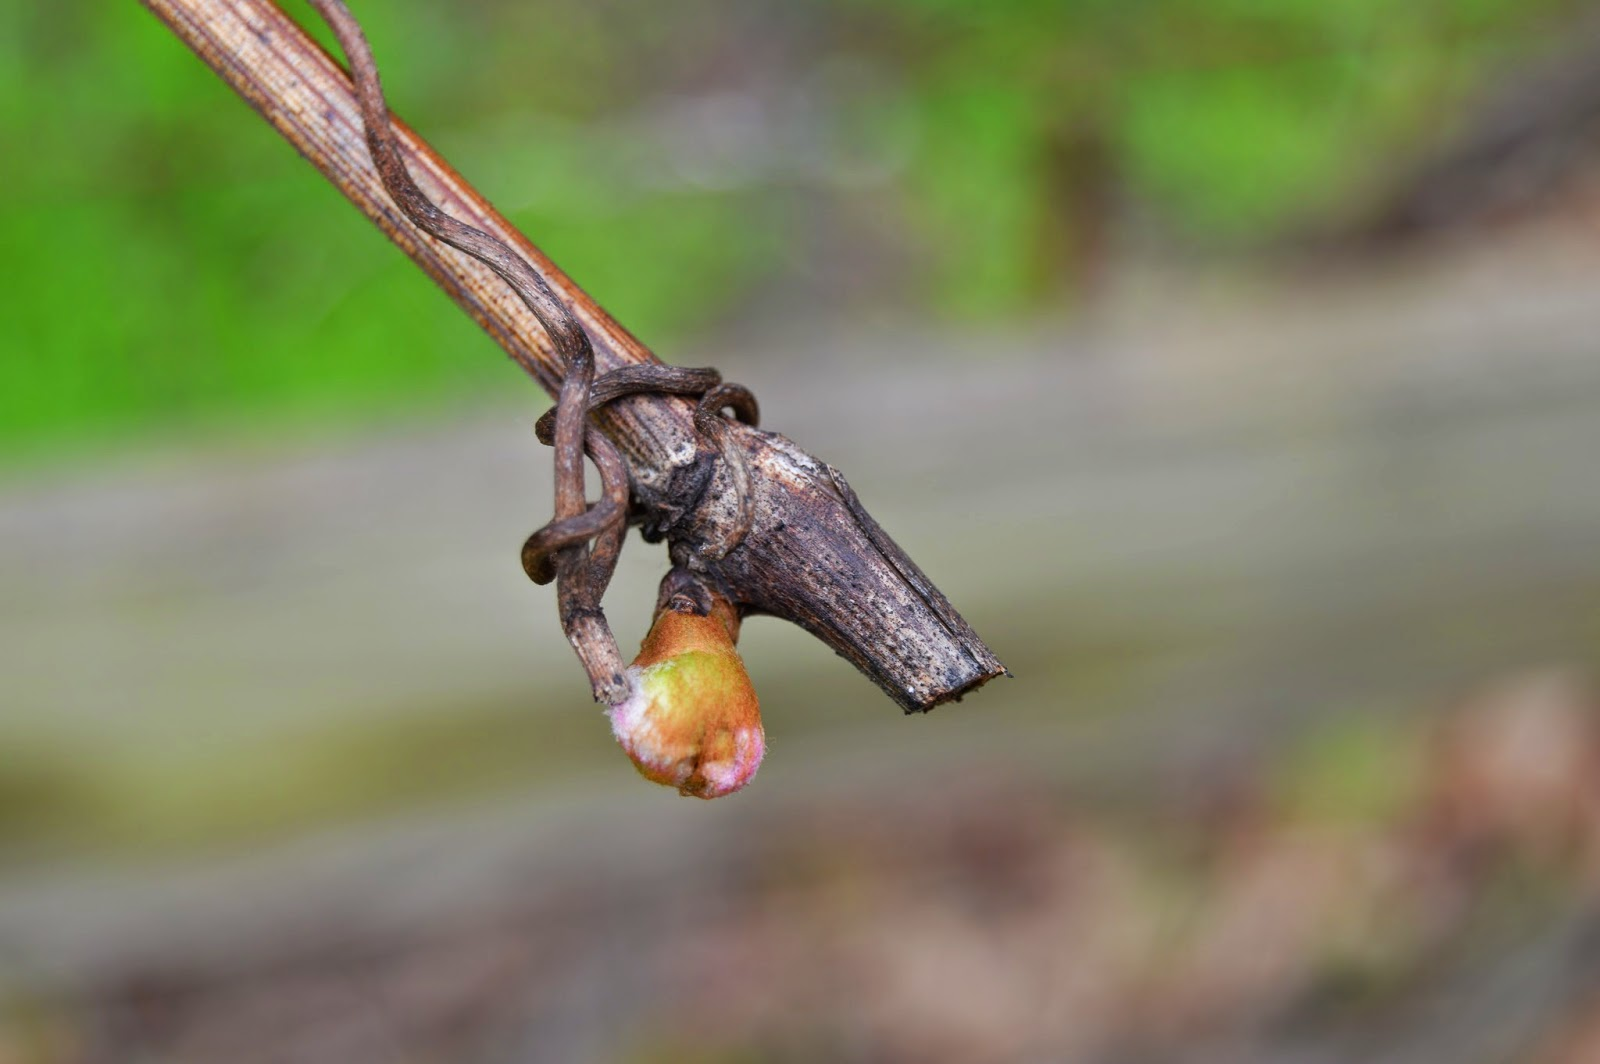 leaves budding on a grapevine